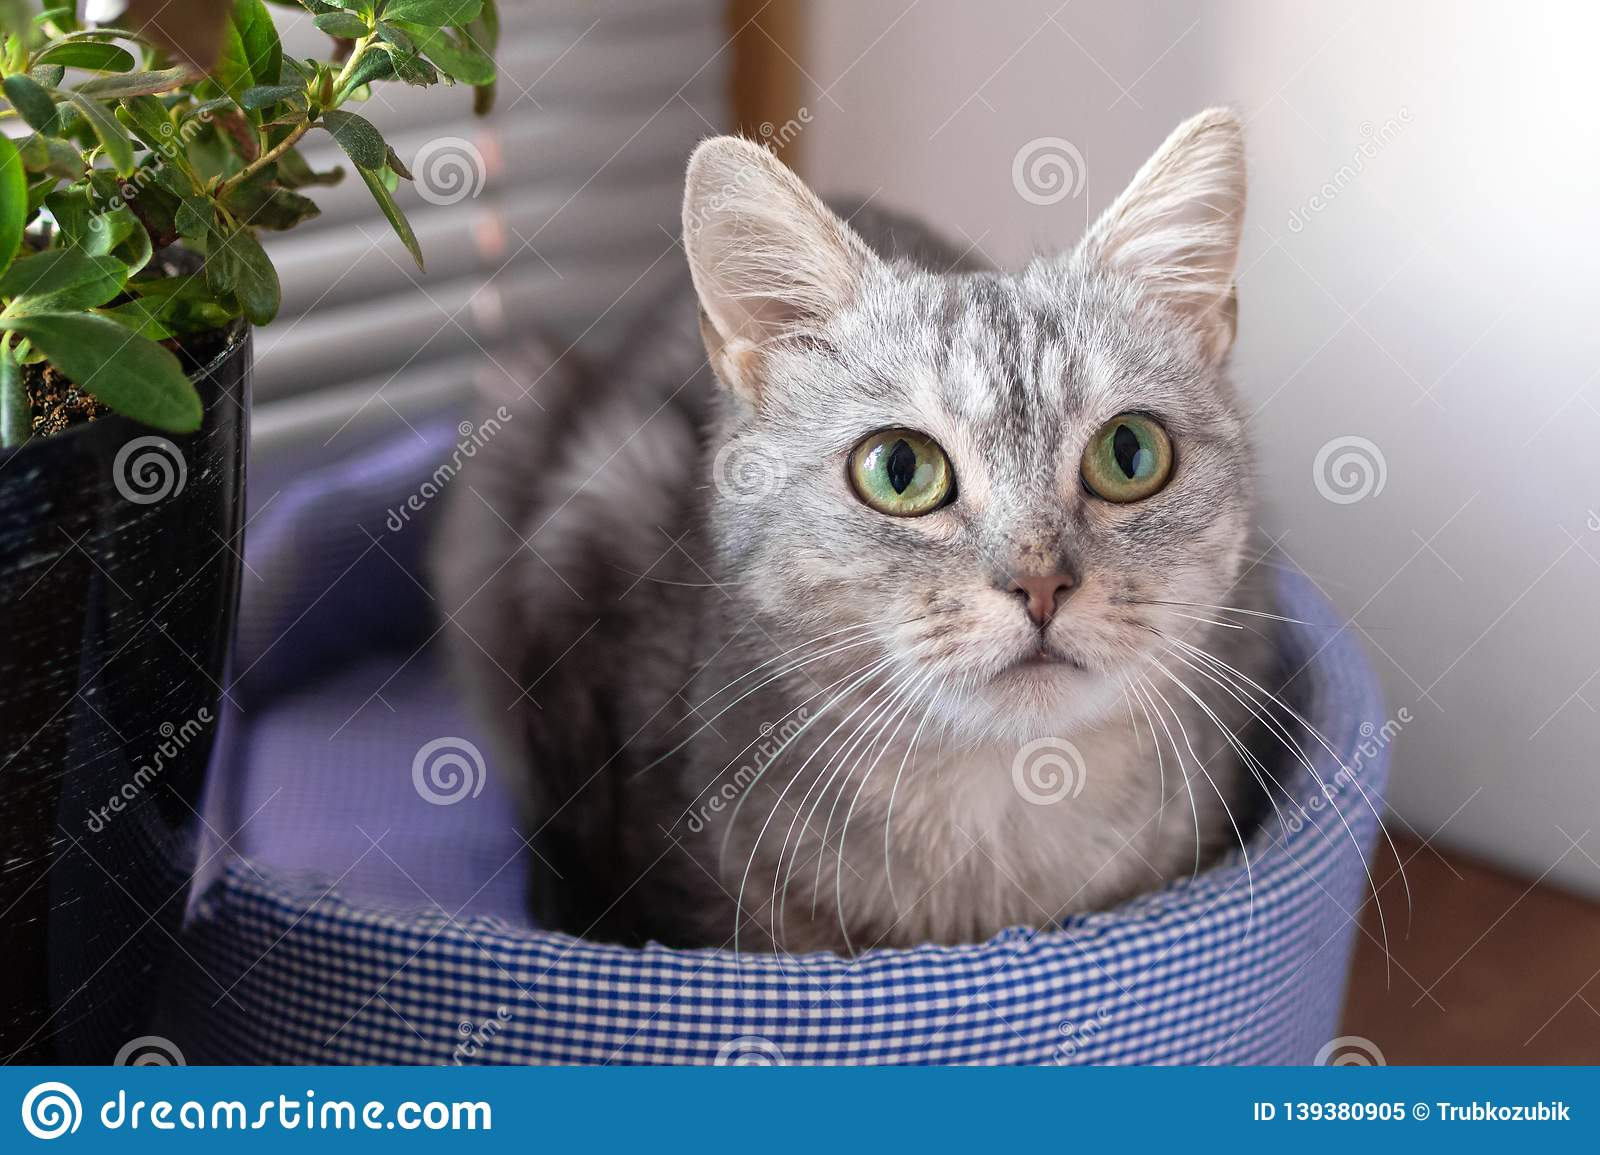 Adorable gray tabby cat with green eyes is sitting on a cat bed near to a window and pot plant and looking to the camera